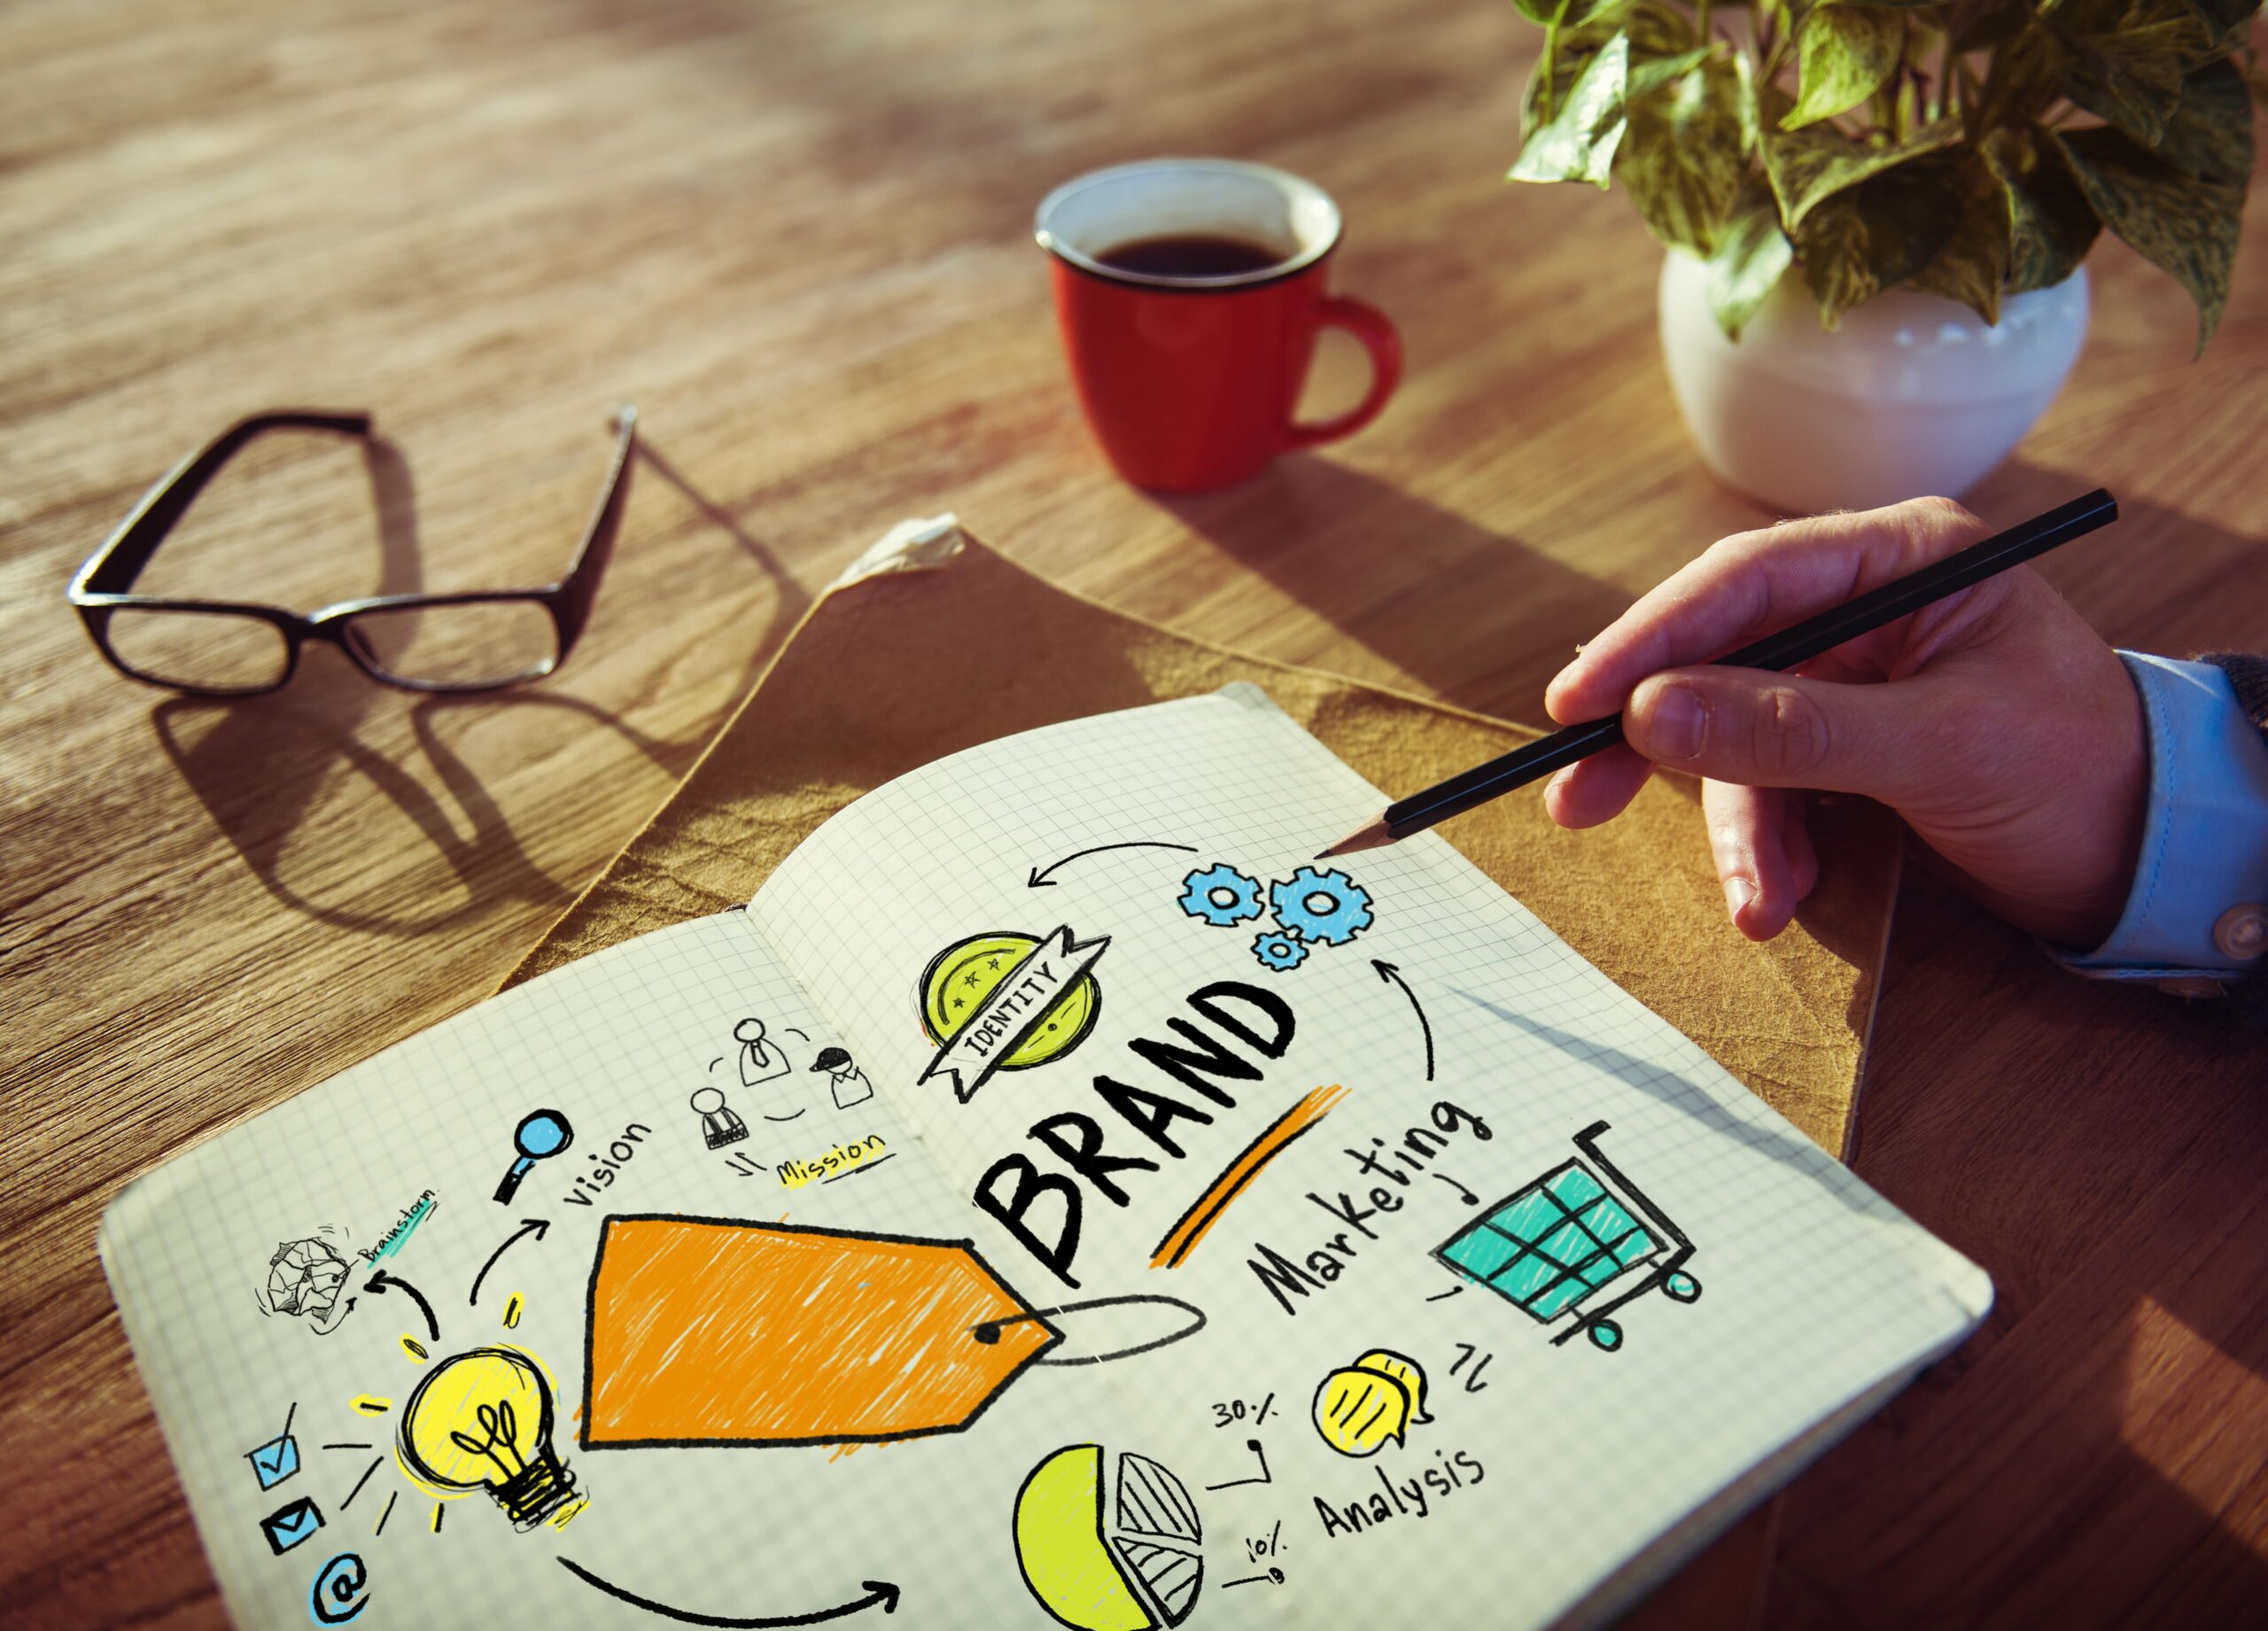 'To grow, brands need to build more than just salience'